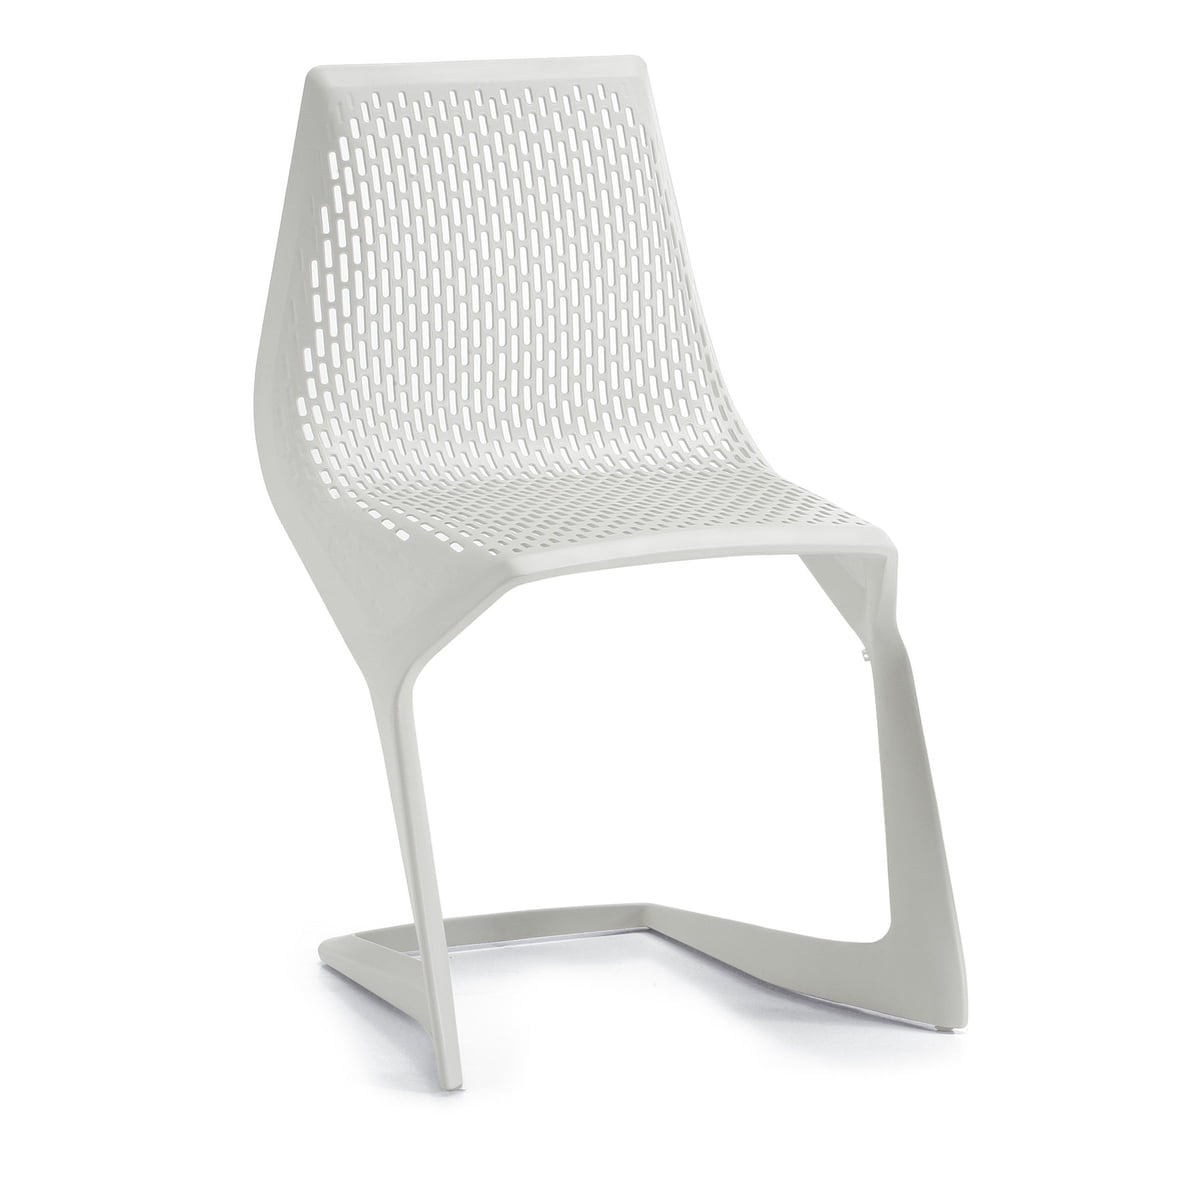 Plank myto chair white